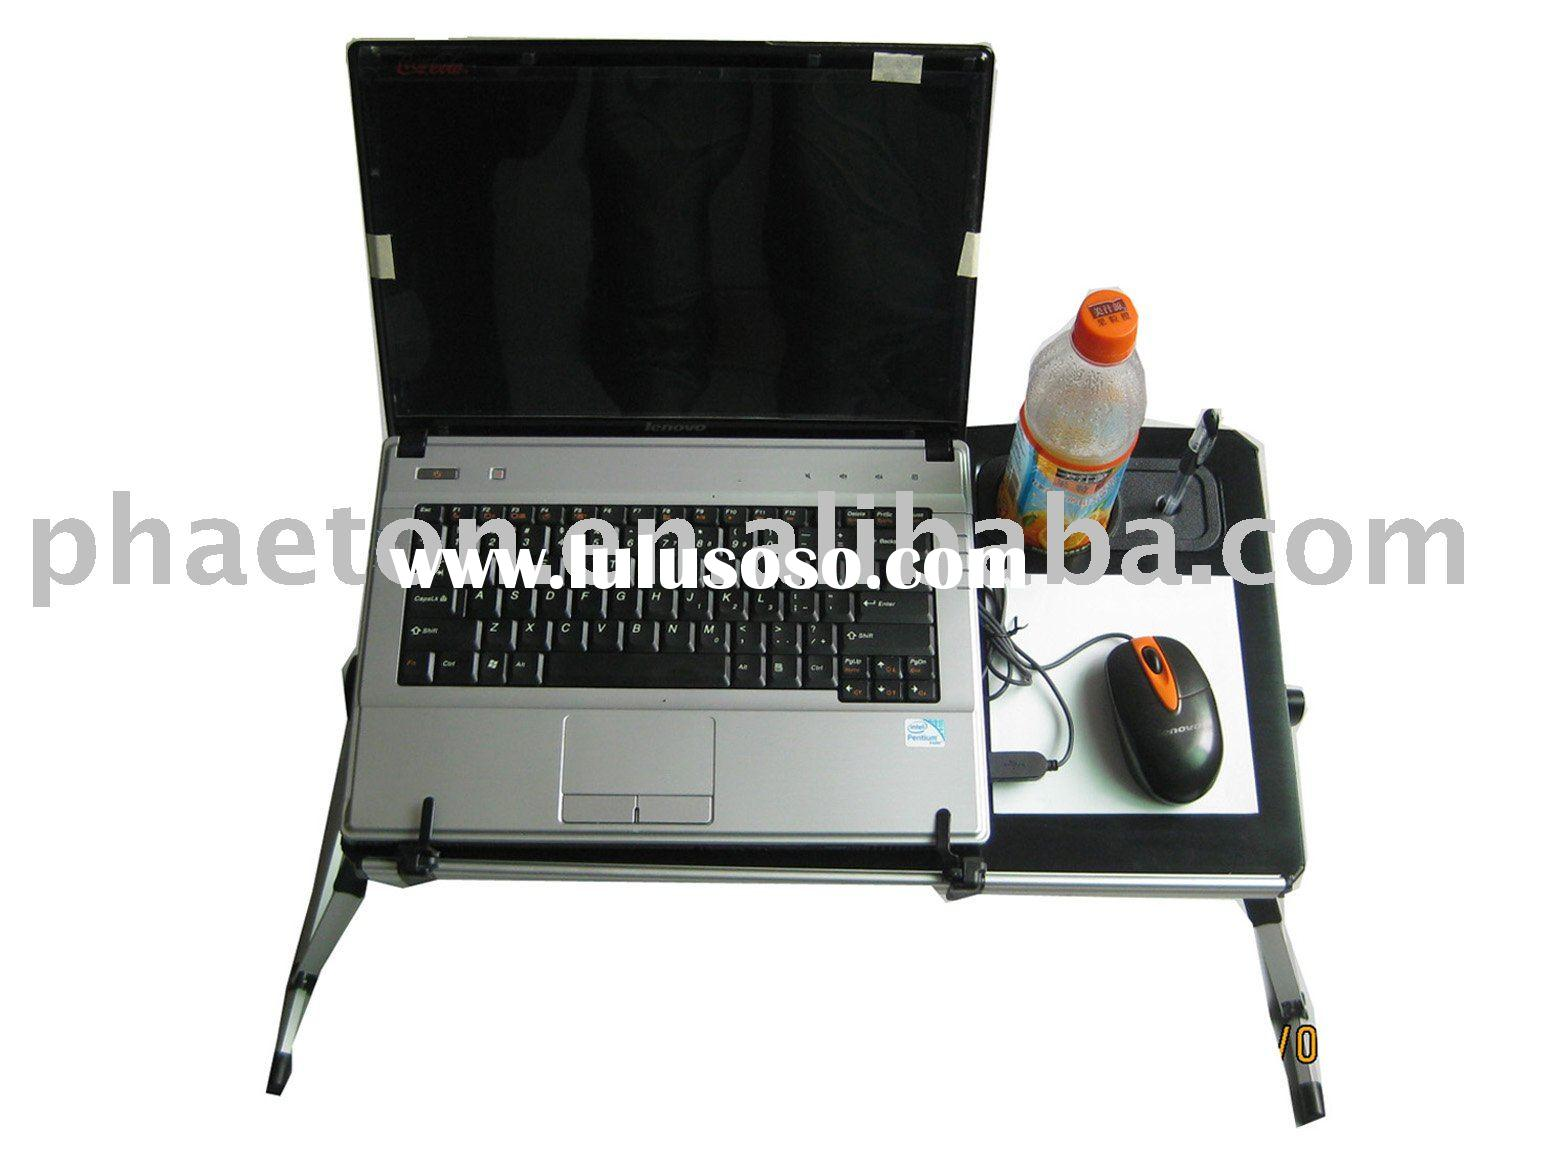 Laptop desk/laptop table/laptop stand